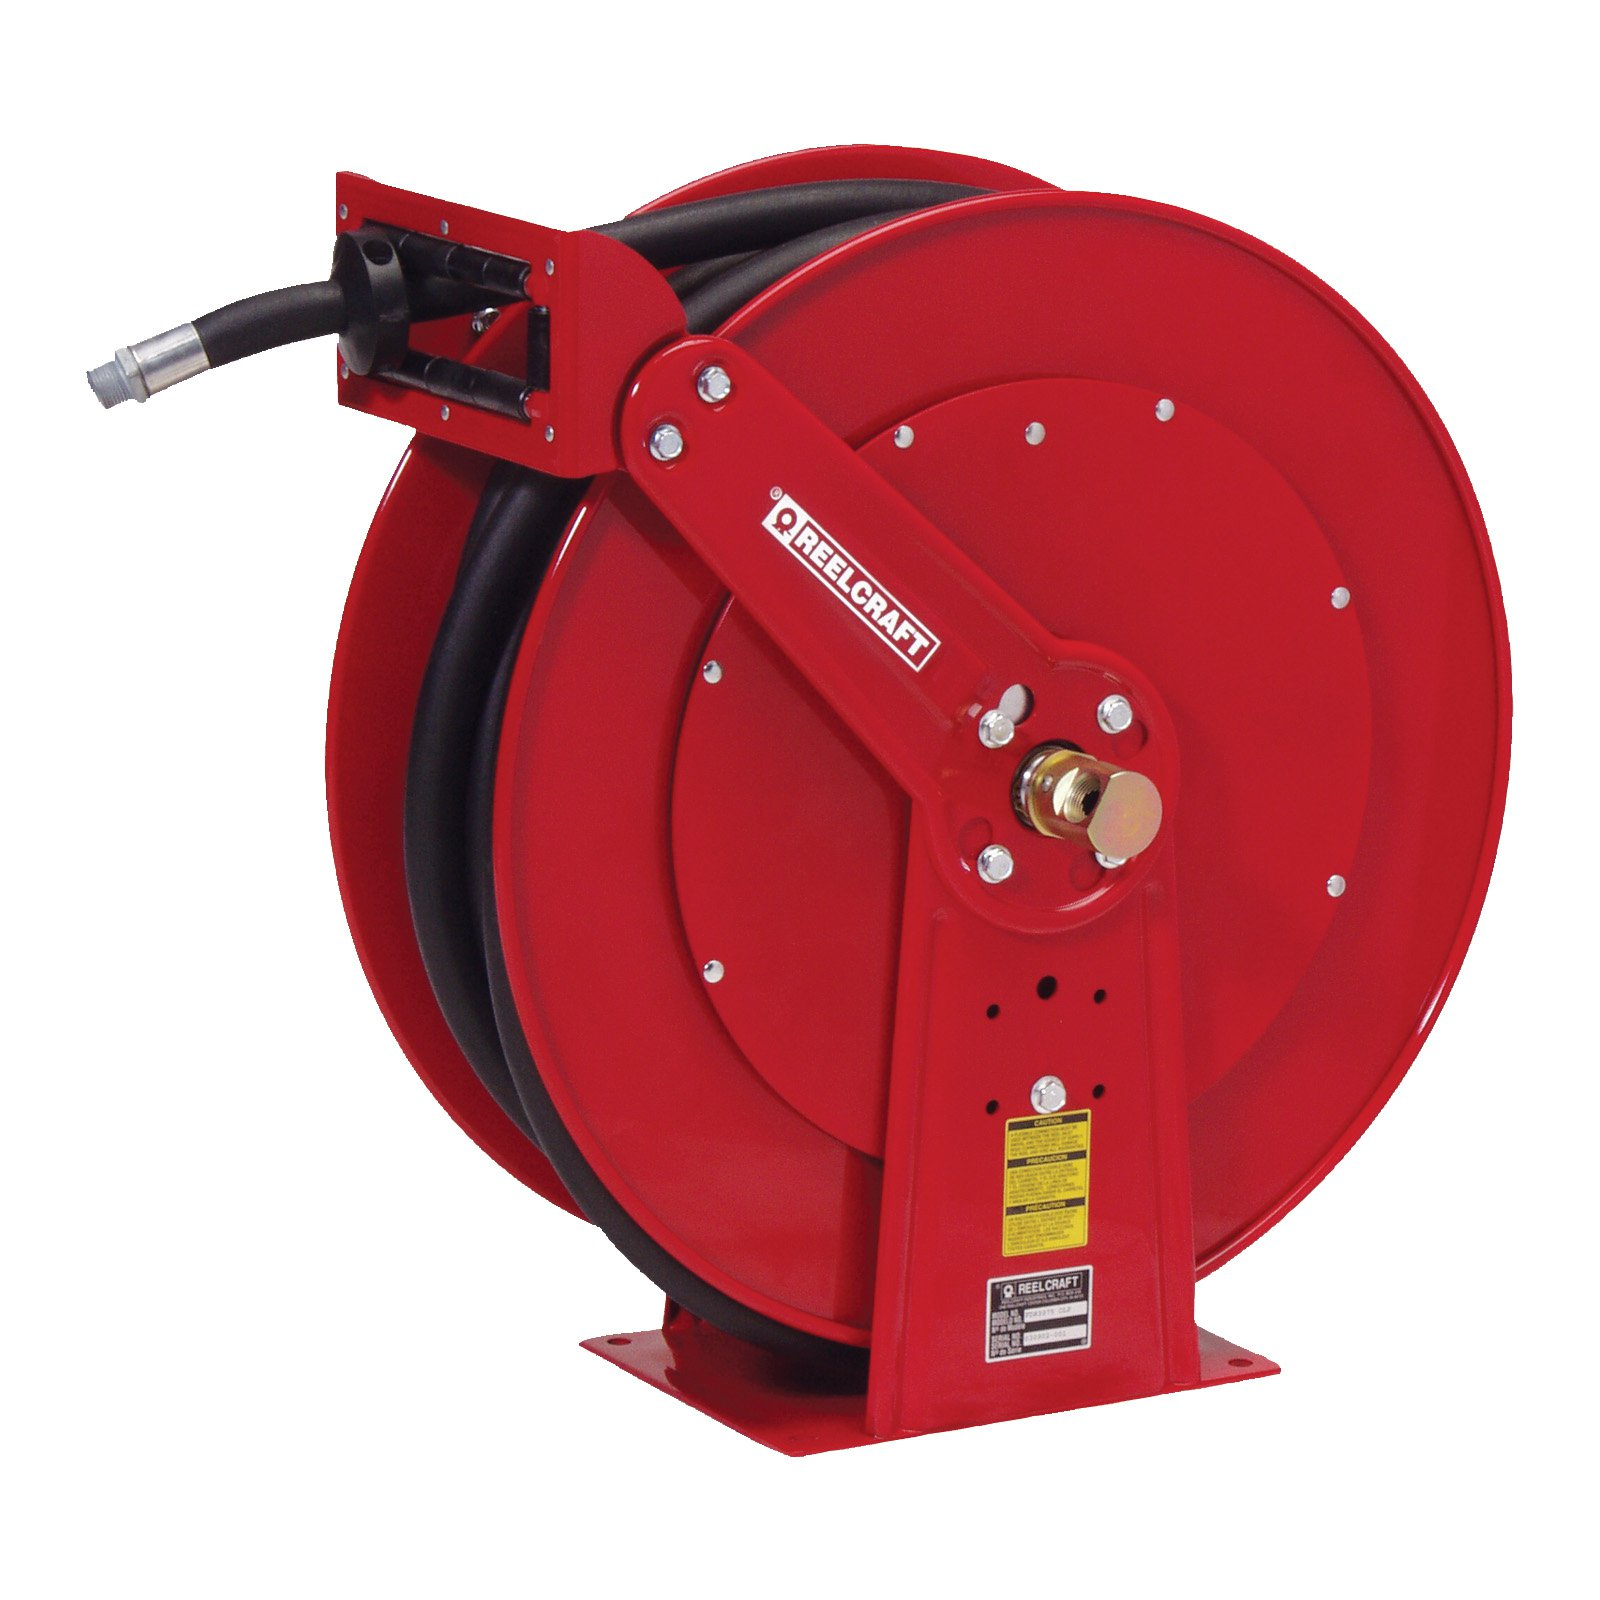 Reelcraft Fuel 1 in. Hose Reel 50 ft. by Reelcraft Industries